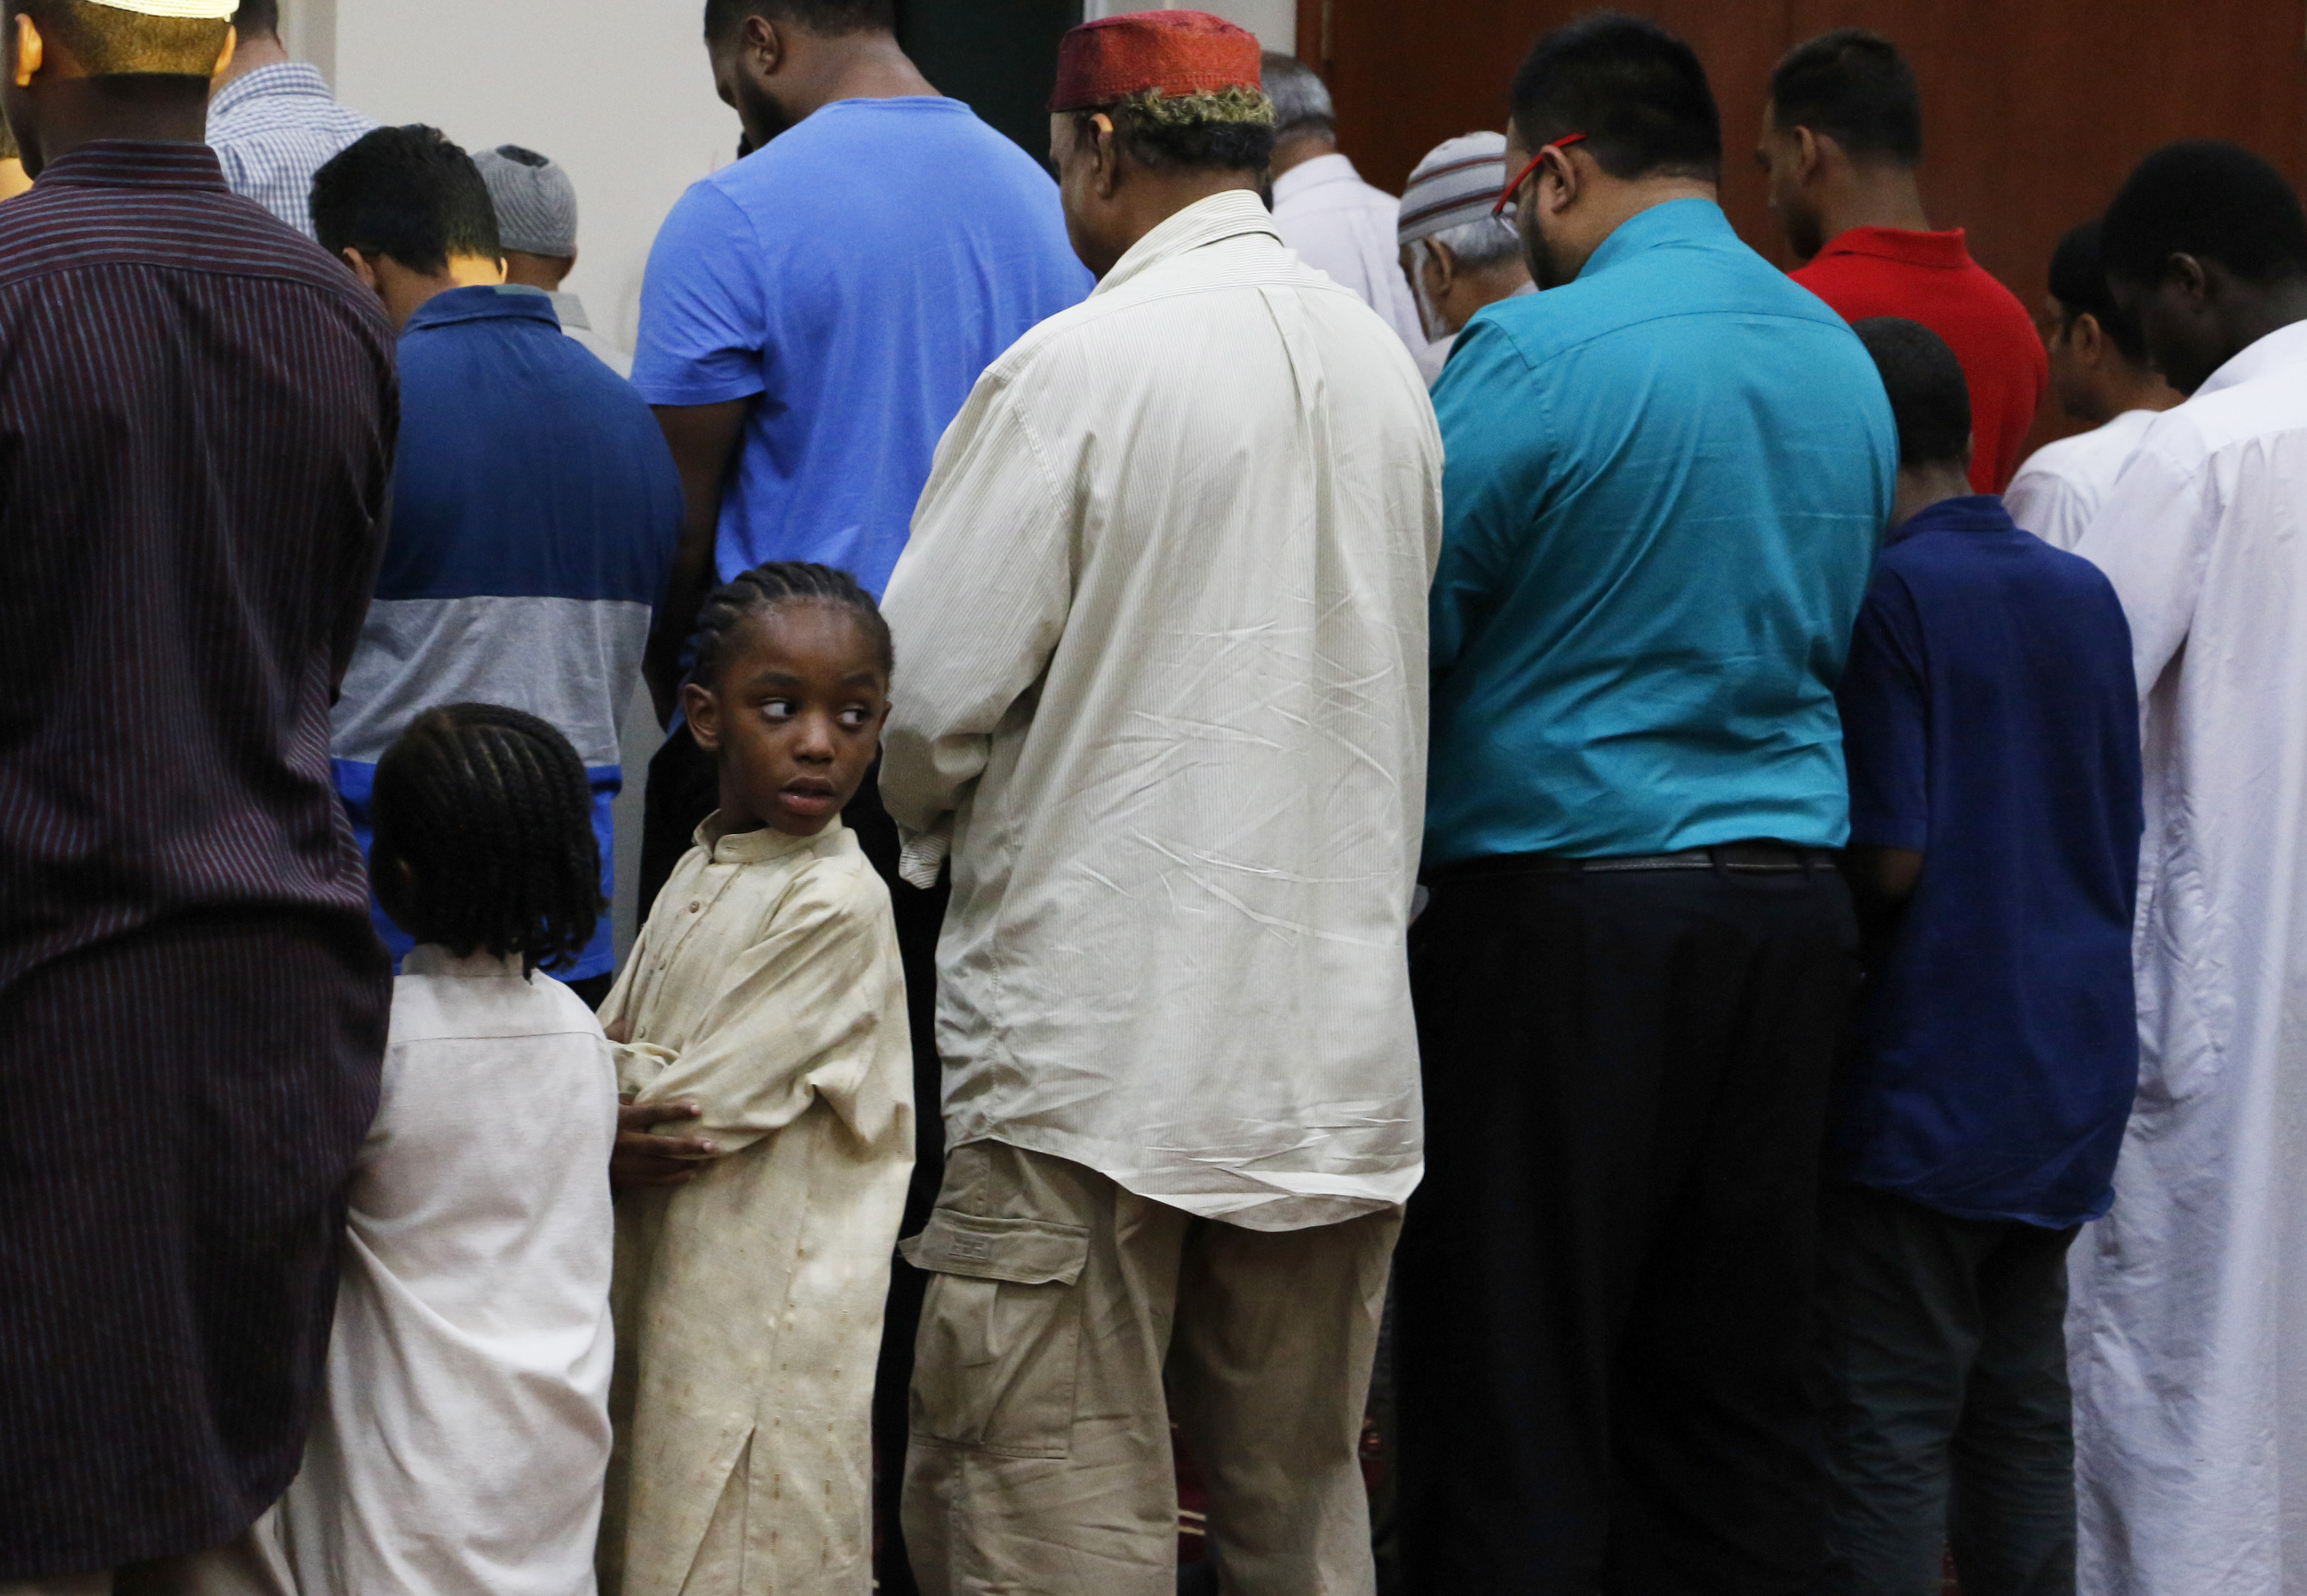 Diane Cooper, 5, stands with other Muslim men prior to prayer during the Ramadan Open House at Masjid Miami Gardens on June 9, 2016. The public was invited to a dinner as the fast of Ramadan is broken.